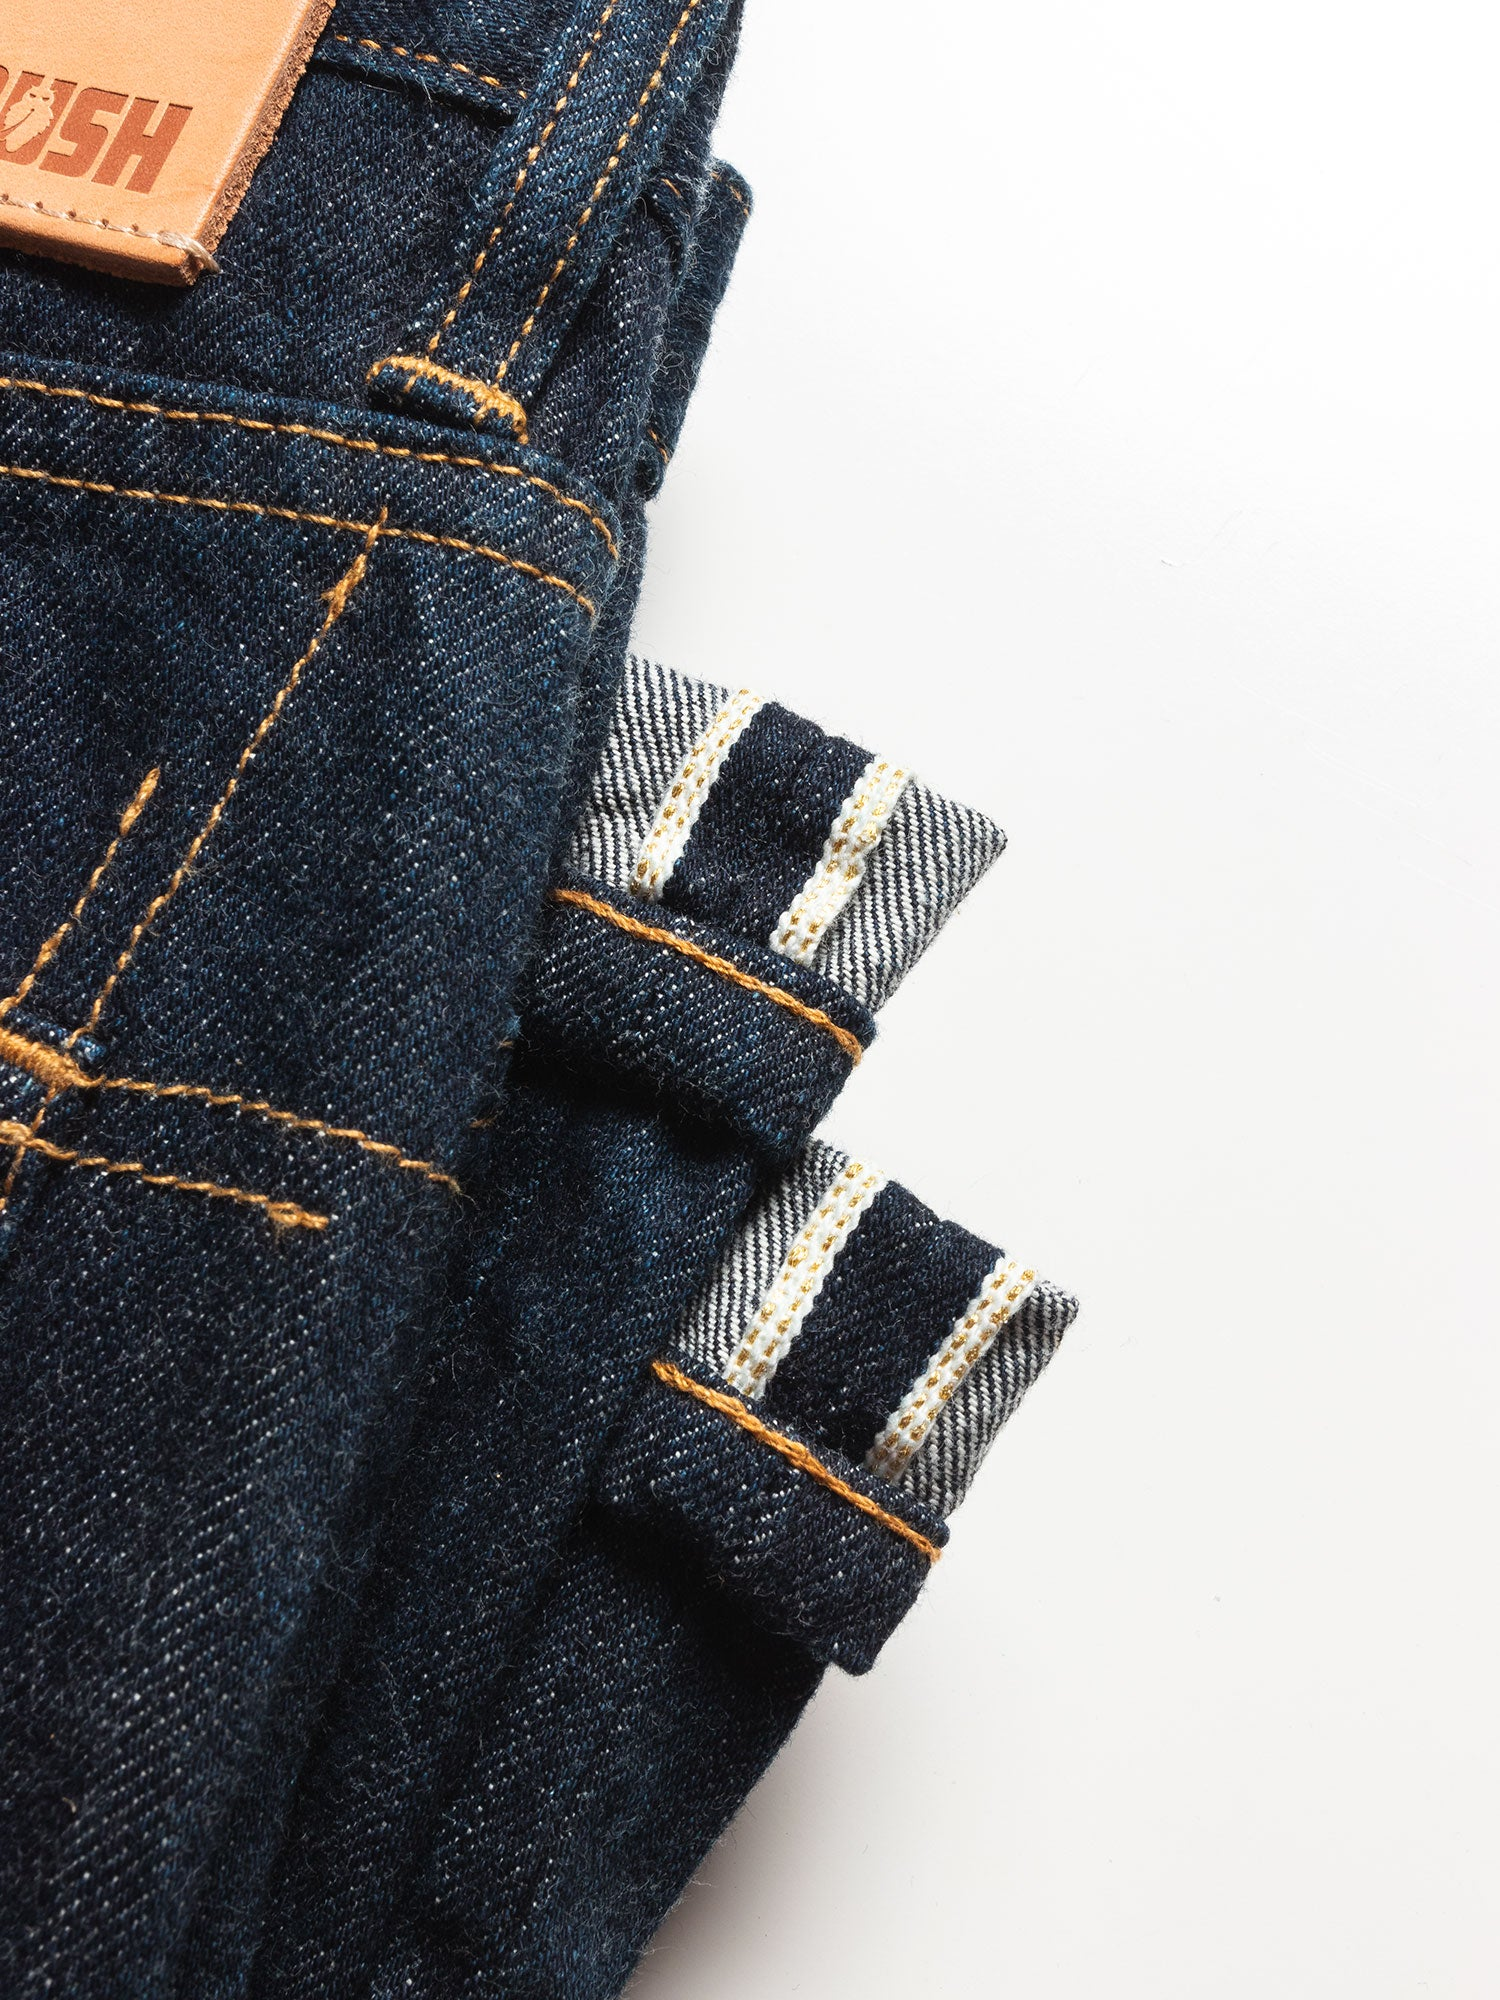 An up close image of the gold selvedge detail on the jeans.